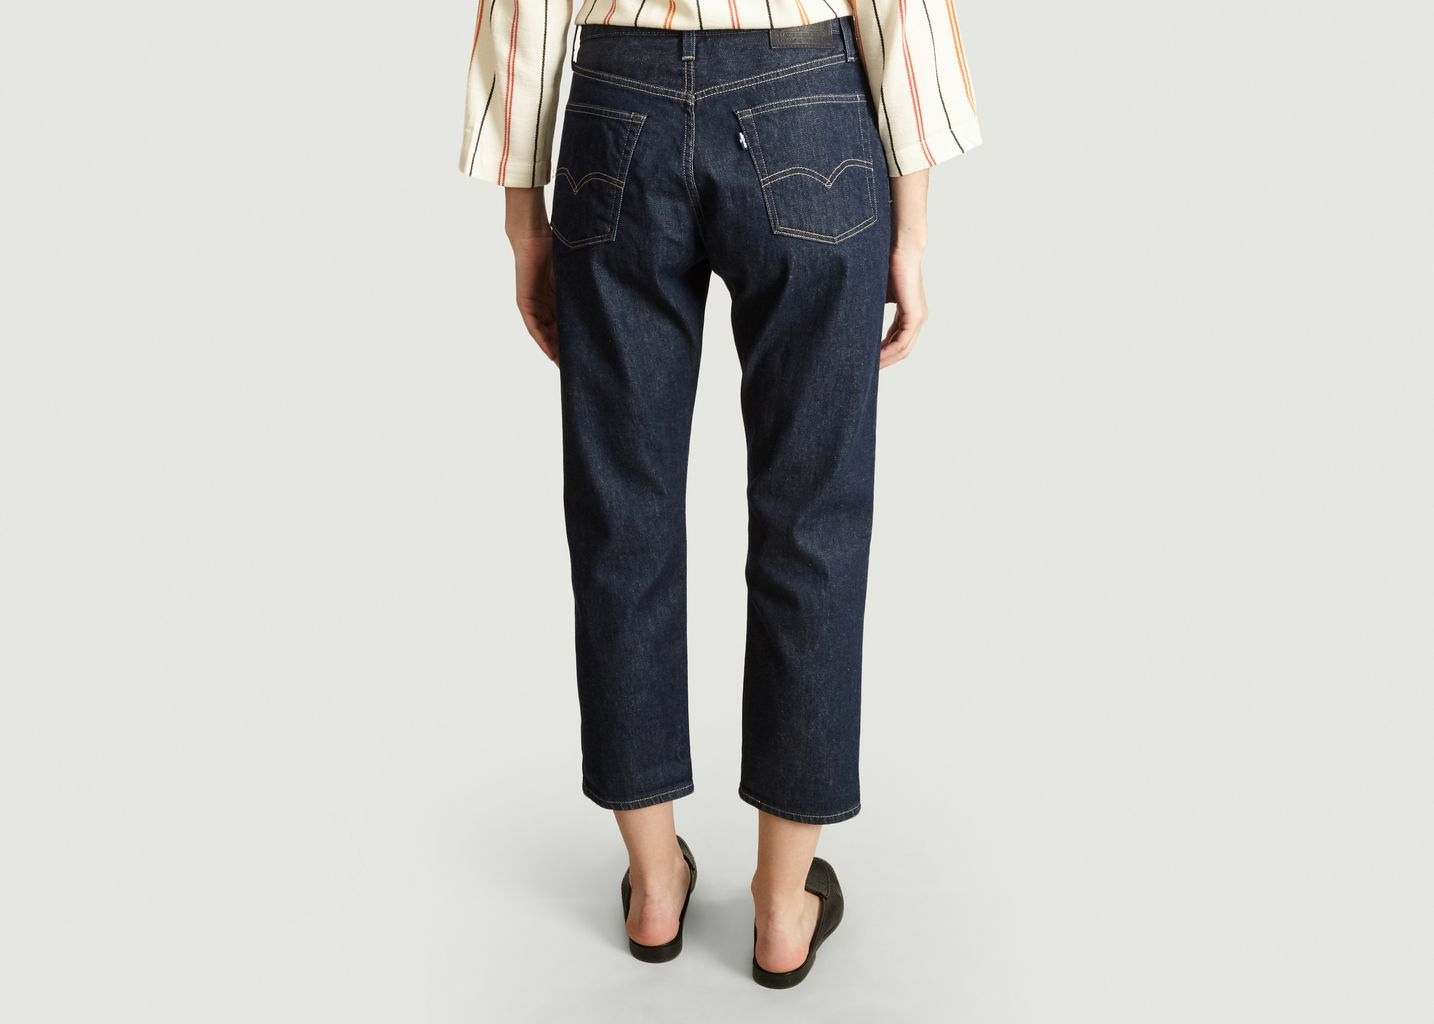 Jean 501 Cropped - Levi's Made and Crafted